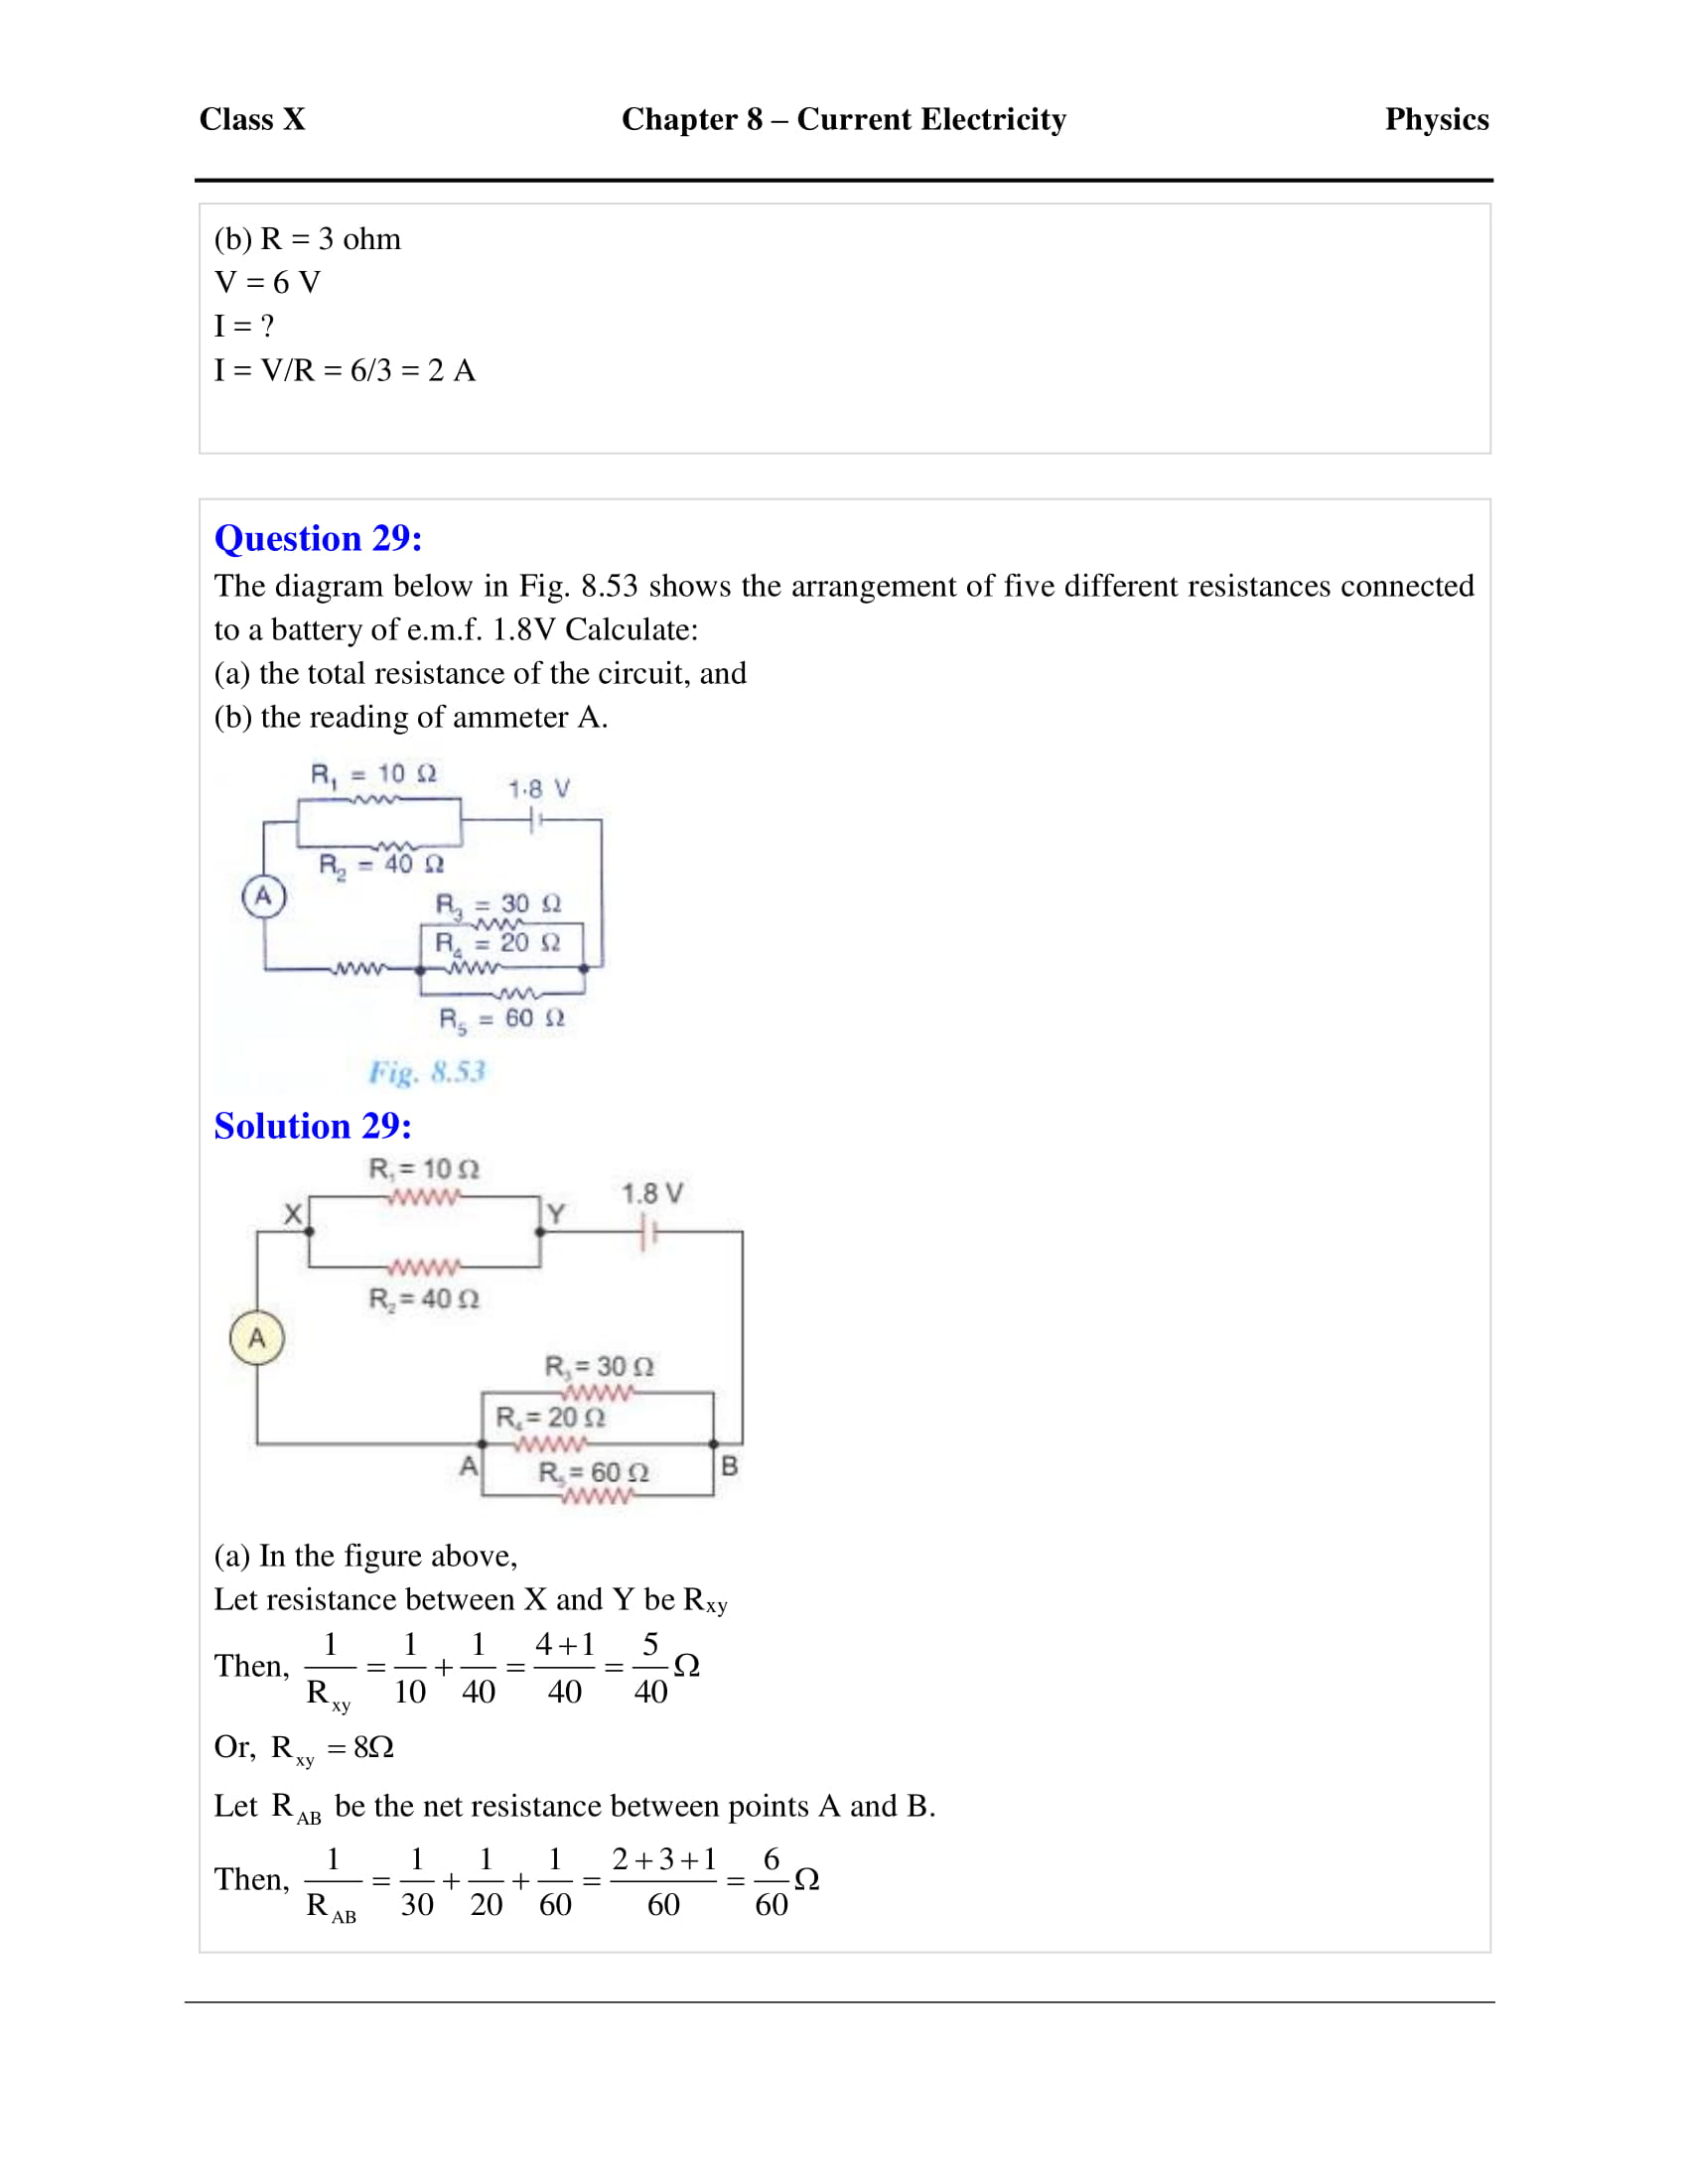 icse-selina-physics-solutions-class-10-chapter-8-current-electricity-39